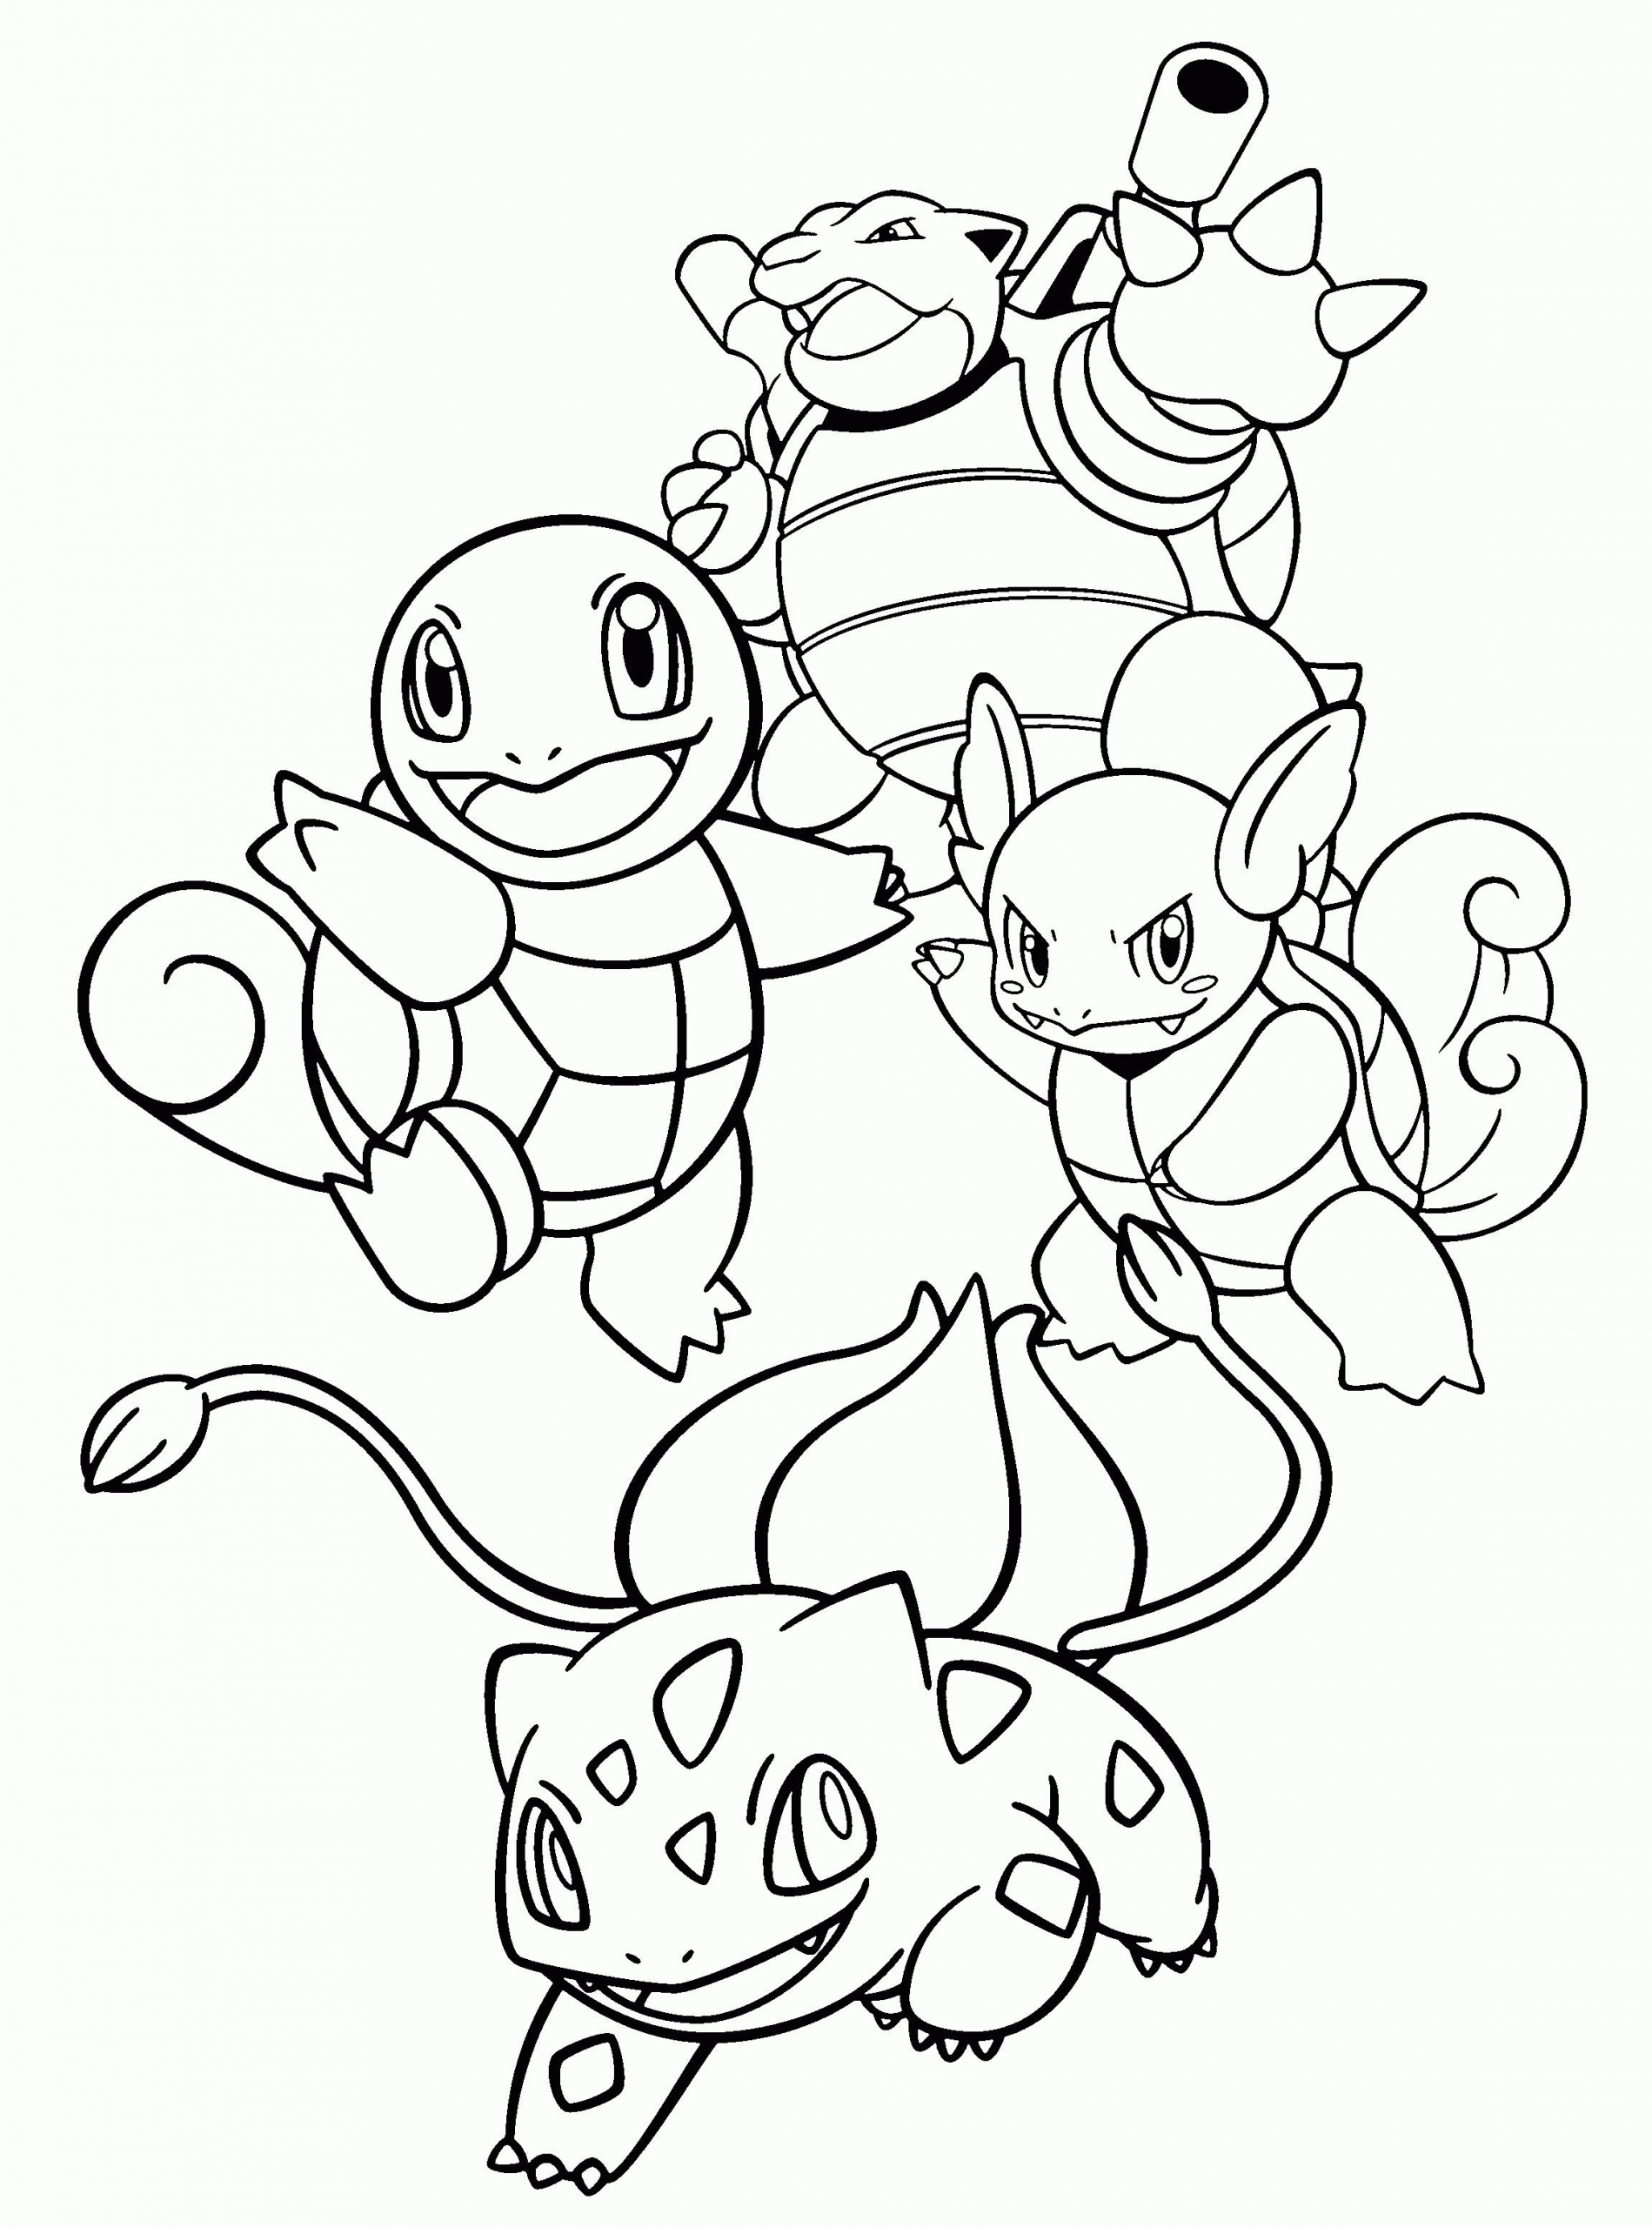 Squirtle Pokemon Coloring Pages : squirtle, pokemon, coloring, pages, Squirtle, Pokemon, Coloring, Youngandtae.com, Pages,, Coloring,, Pikachu